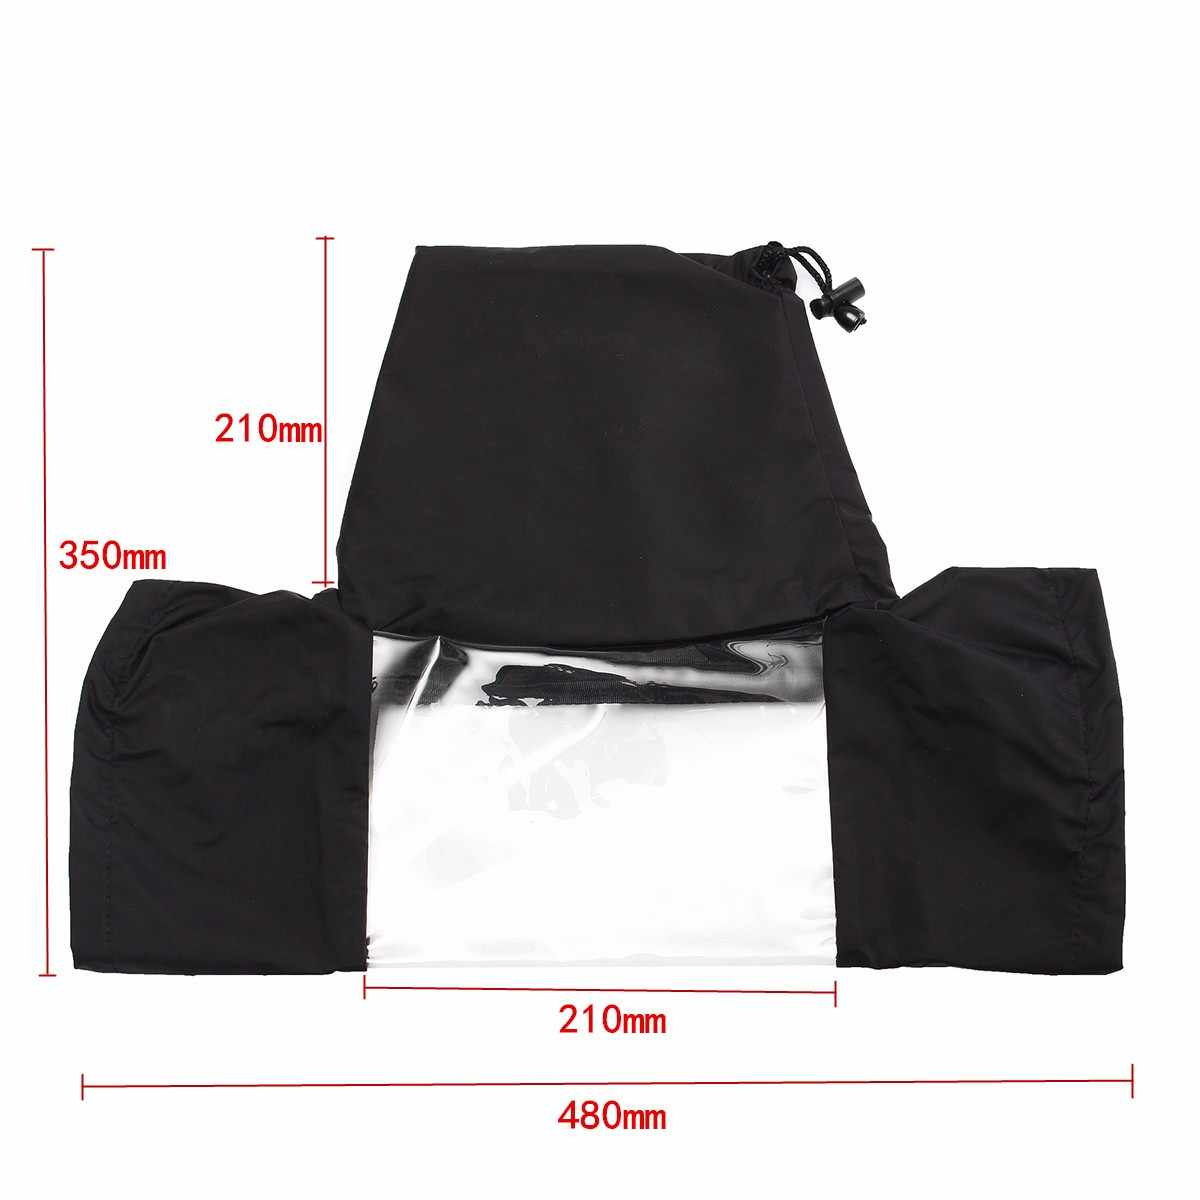 Waterproof Case Nylon Rain Cover Photo Photography Accessories For DSLR Camera Outdoors Shooting Gear Kit Protection Cover